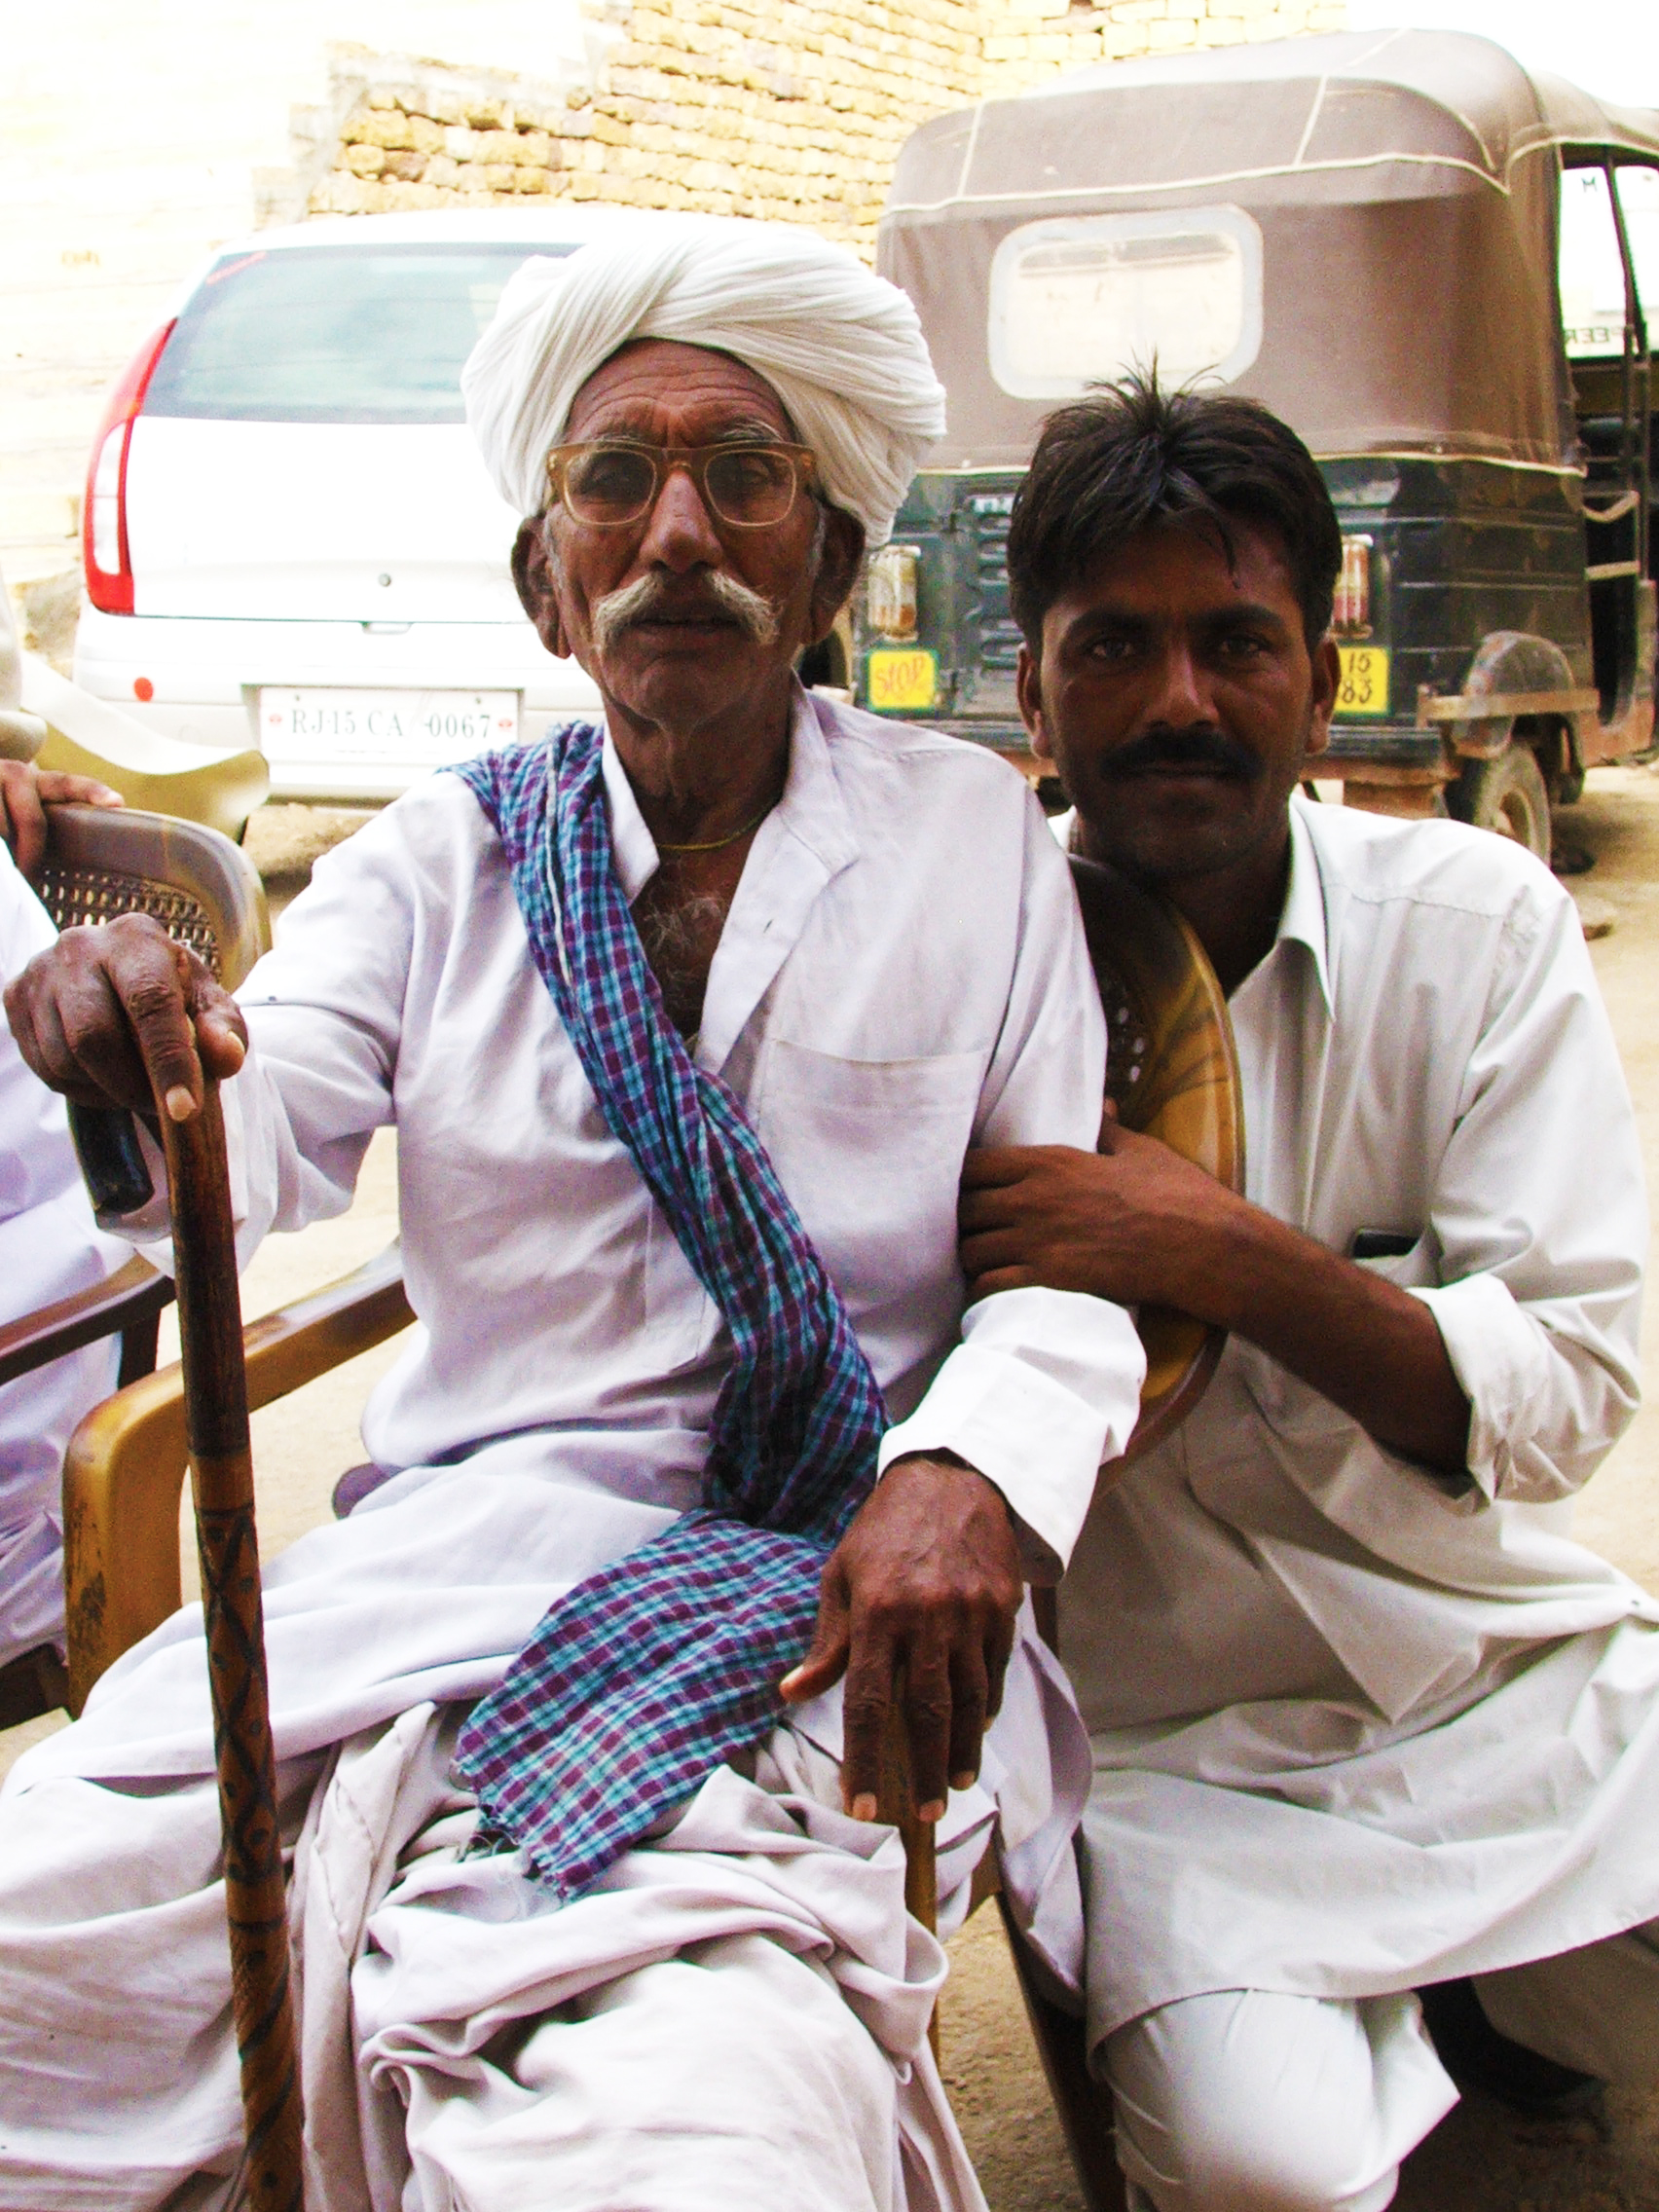 Sakar Khan & Co in Kalakar Colony, Jaisalmer - Summer 2009